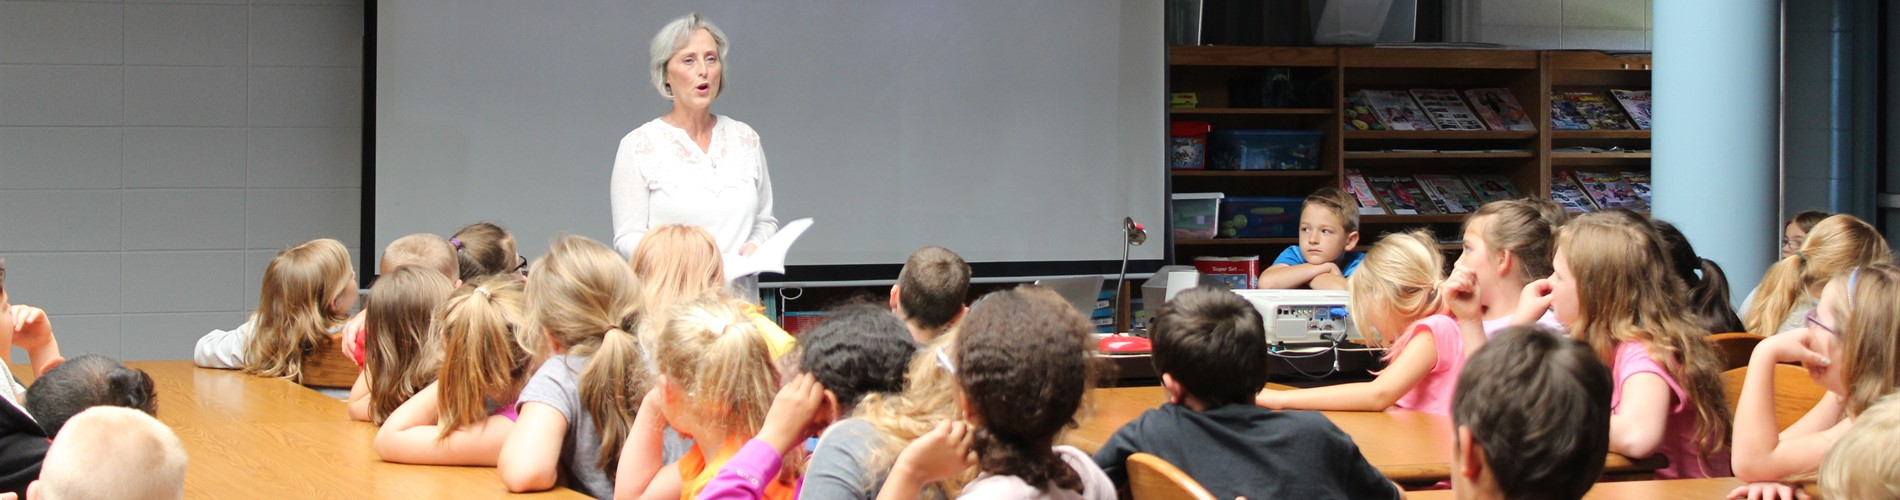 Author Sandra Lawson visits JPE to teach students about becoming an author.